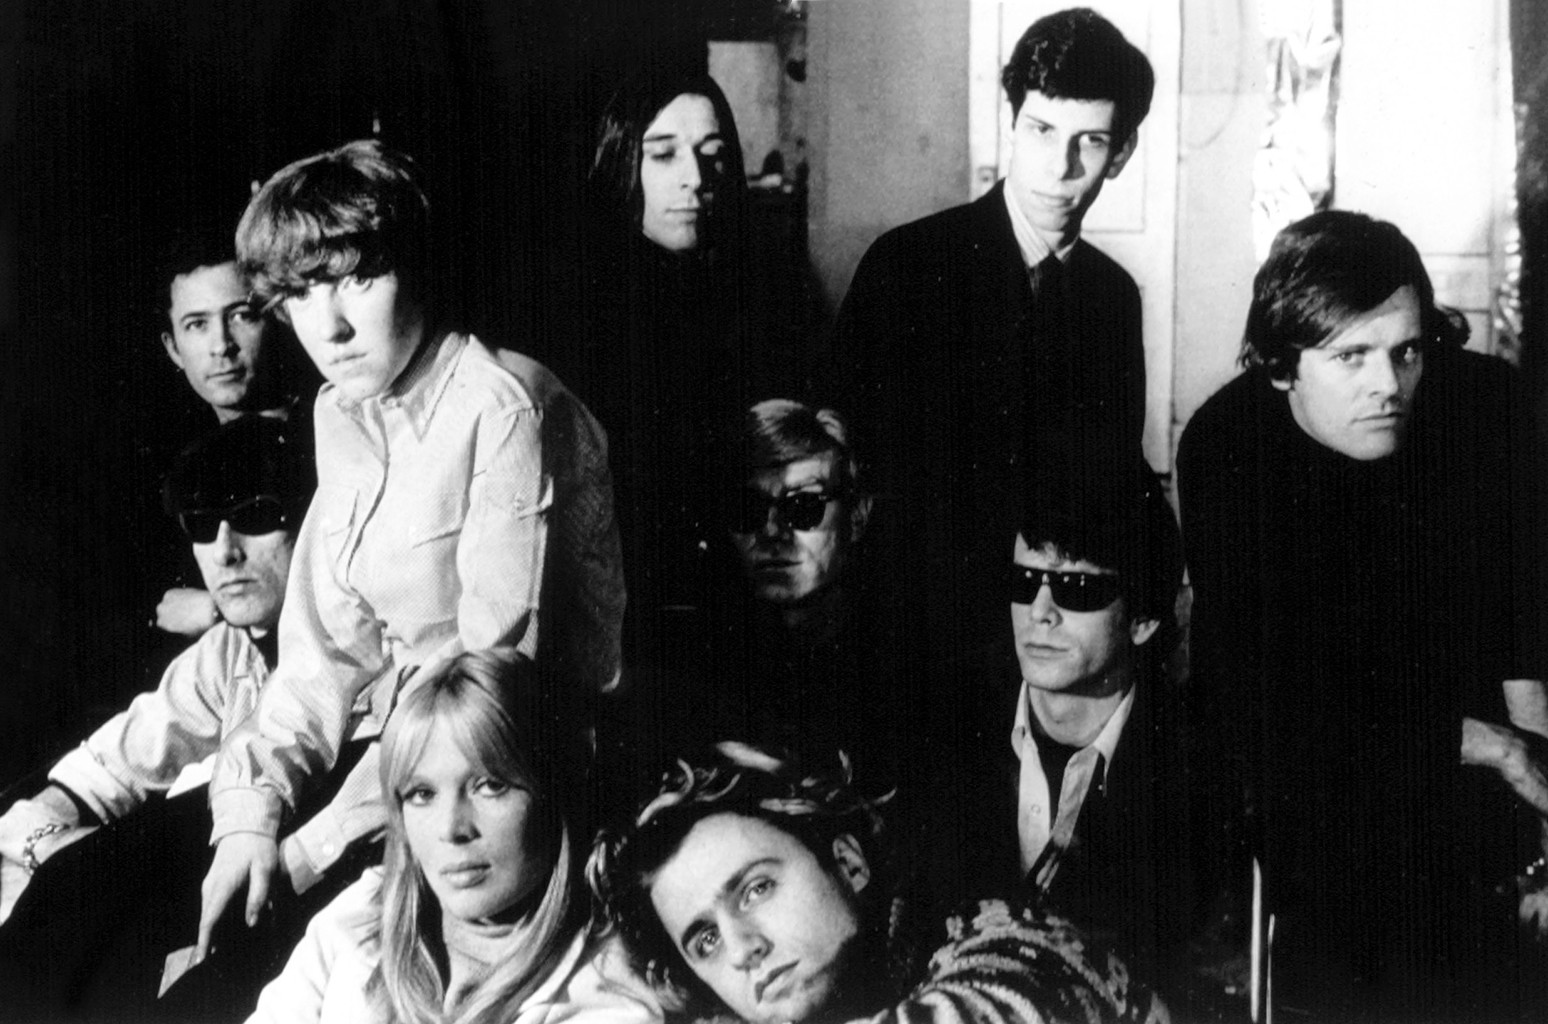 The Velvet Underground, Nico, Andy Warhol, Paul Morrisey and Gerard Melanga photographed circa 1966.